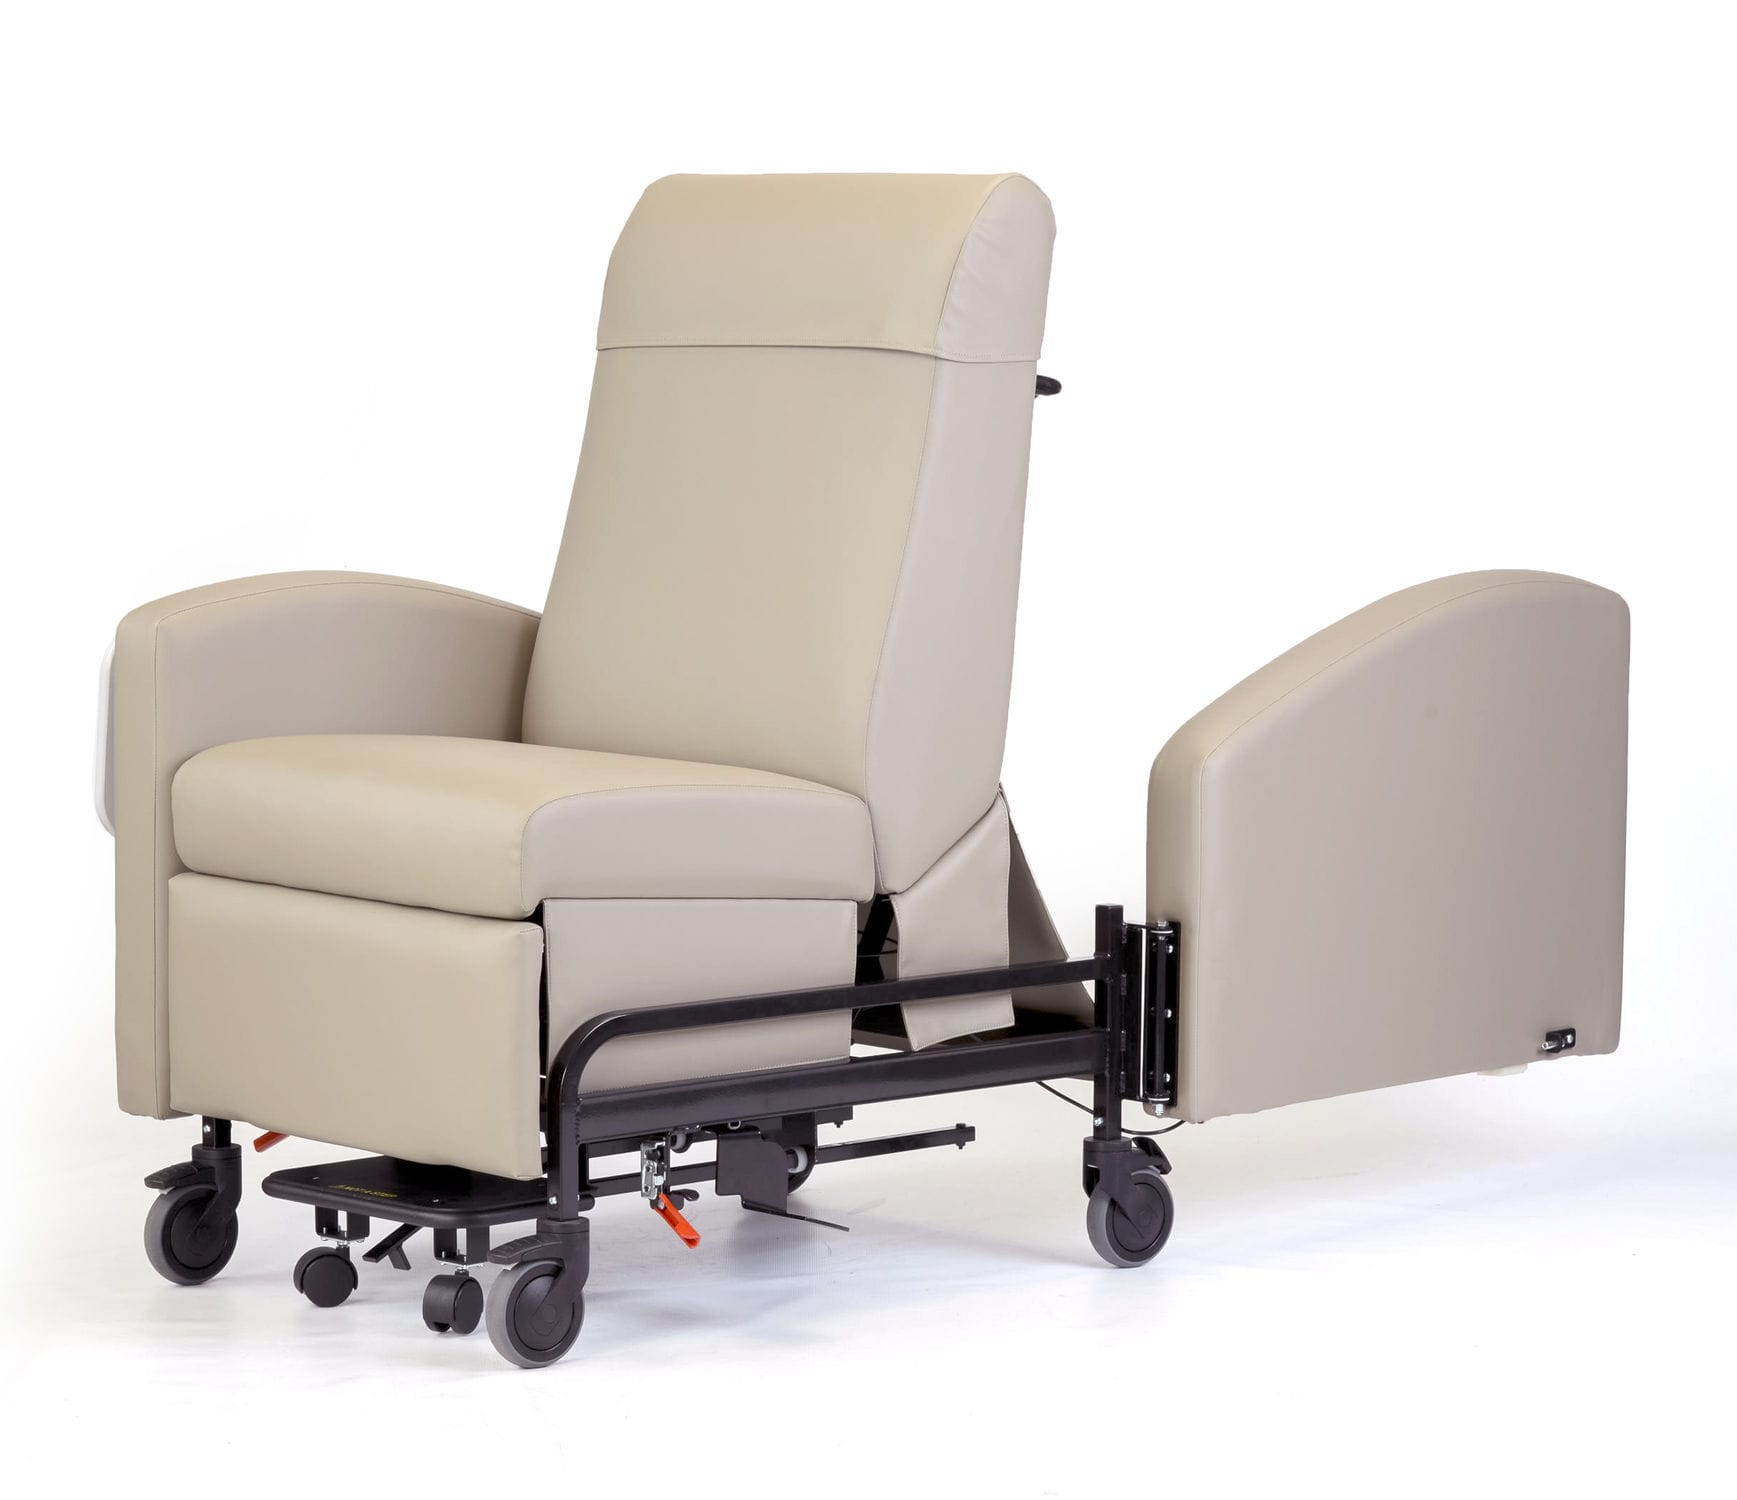 Reclining patient chair on casters with legrest manual